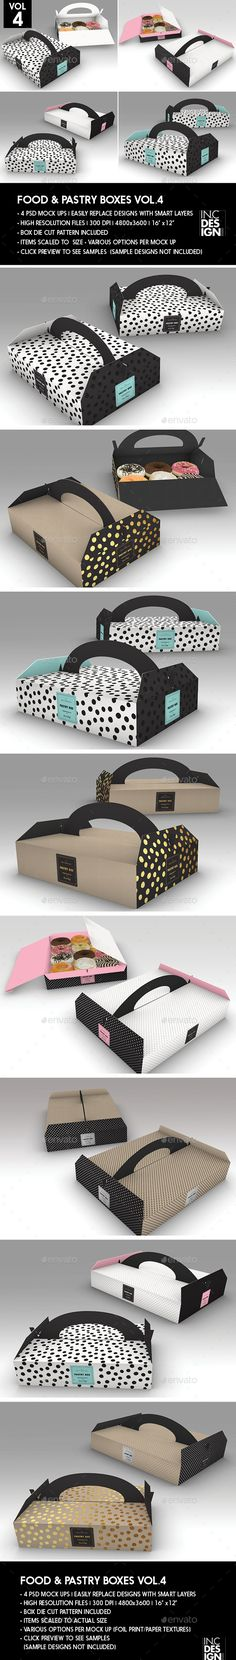 Food Pastry Boxes Vol.4: Donut | Pastry Carrier Take Out Packaging Mock Ups - Food and Drink Packaging